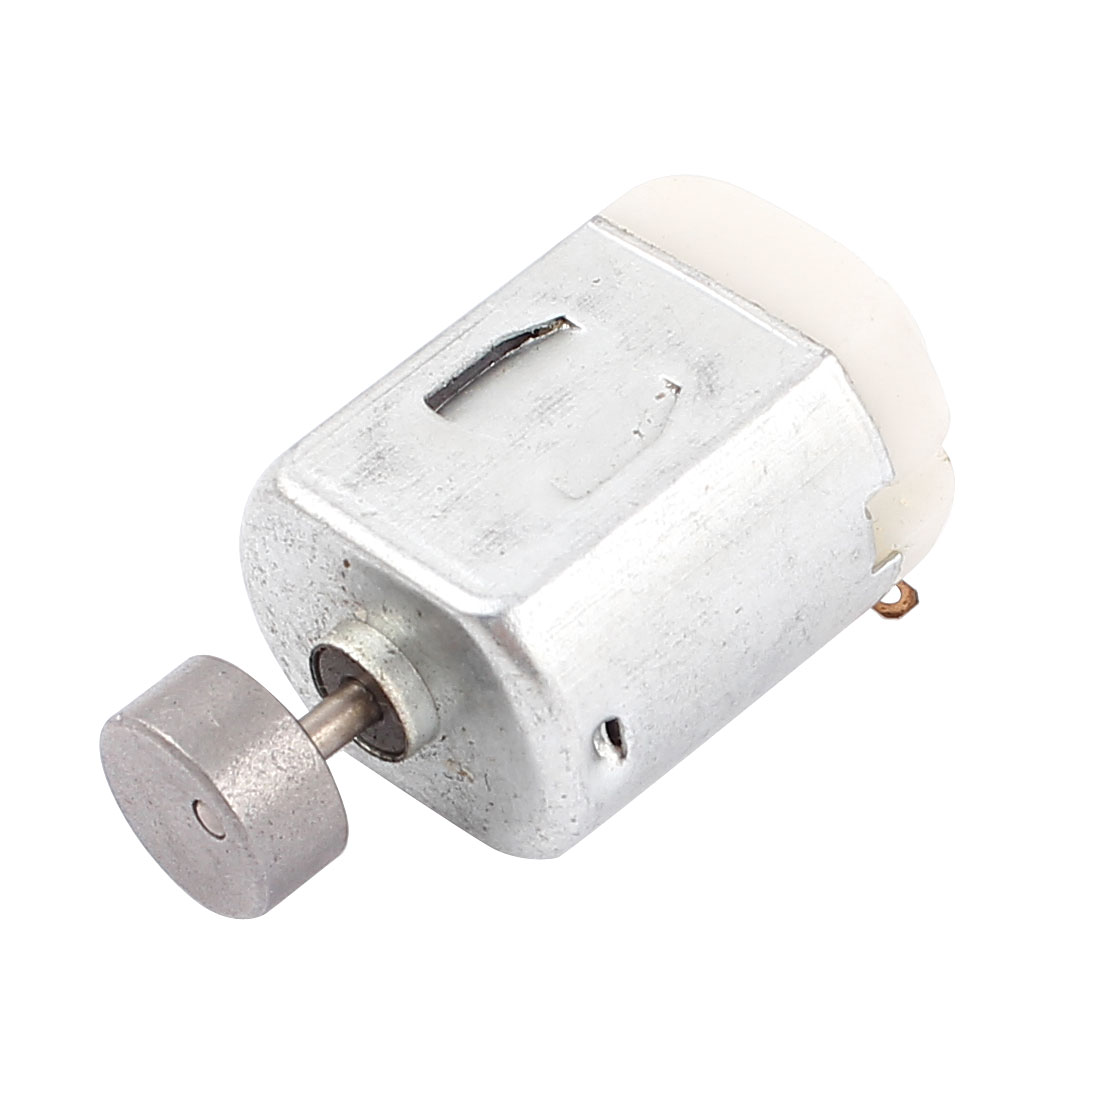 DC 6-12V 5000RPM Mini Magnetic Vibration Motor for Toys Massager Device